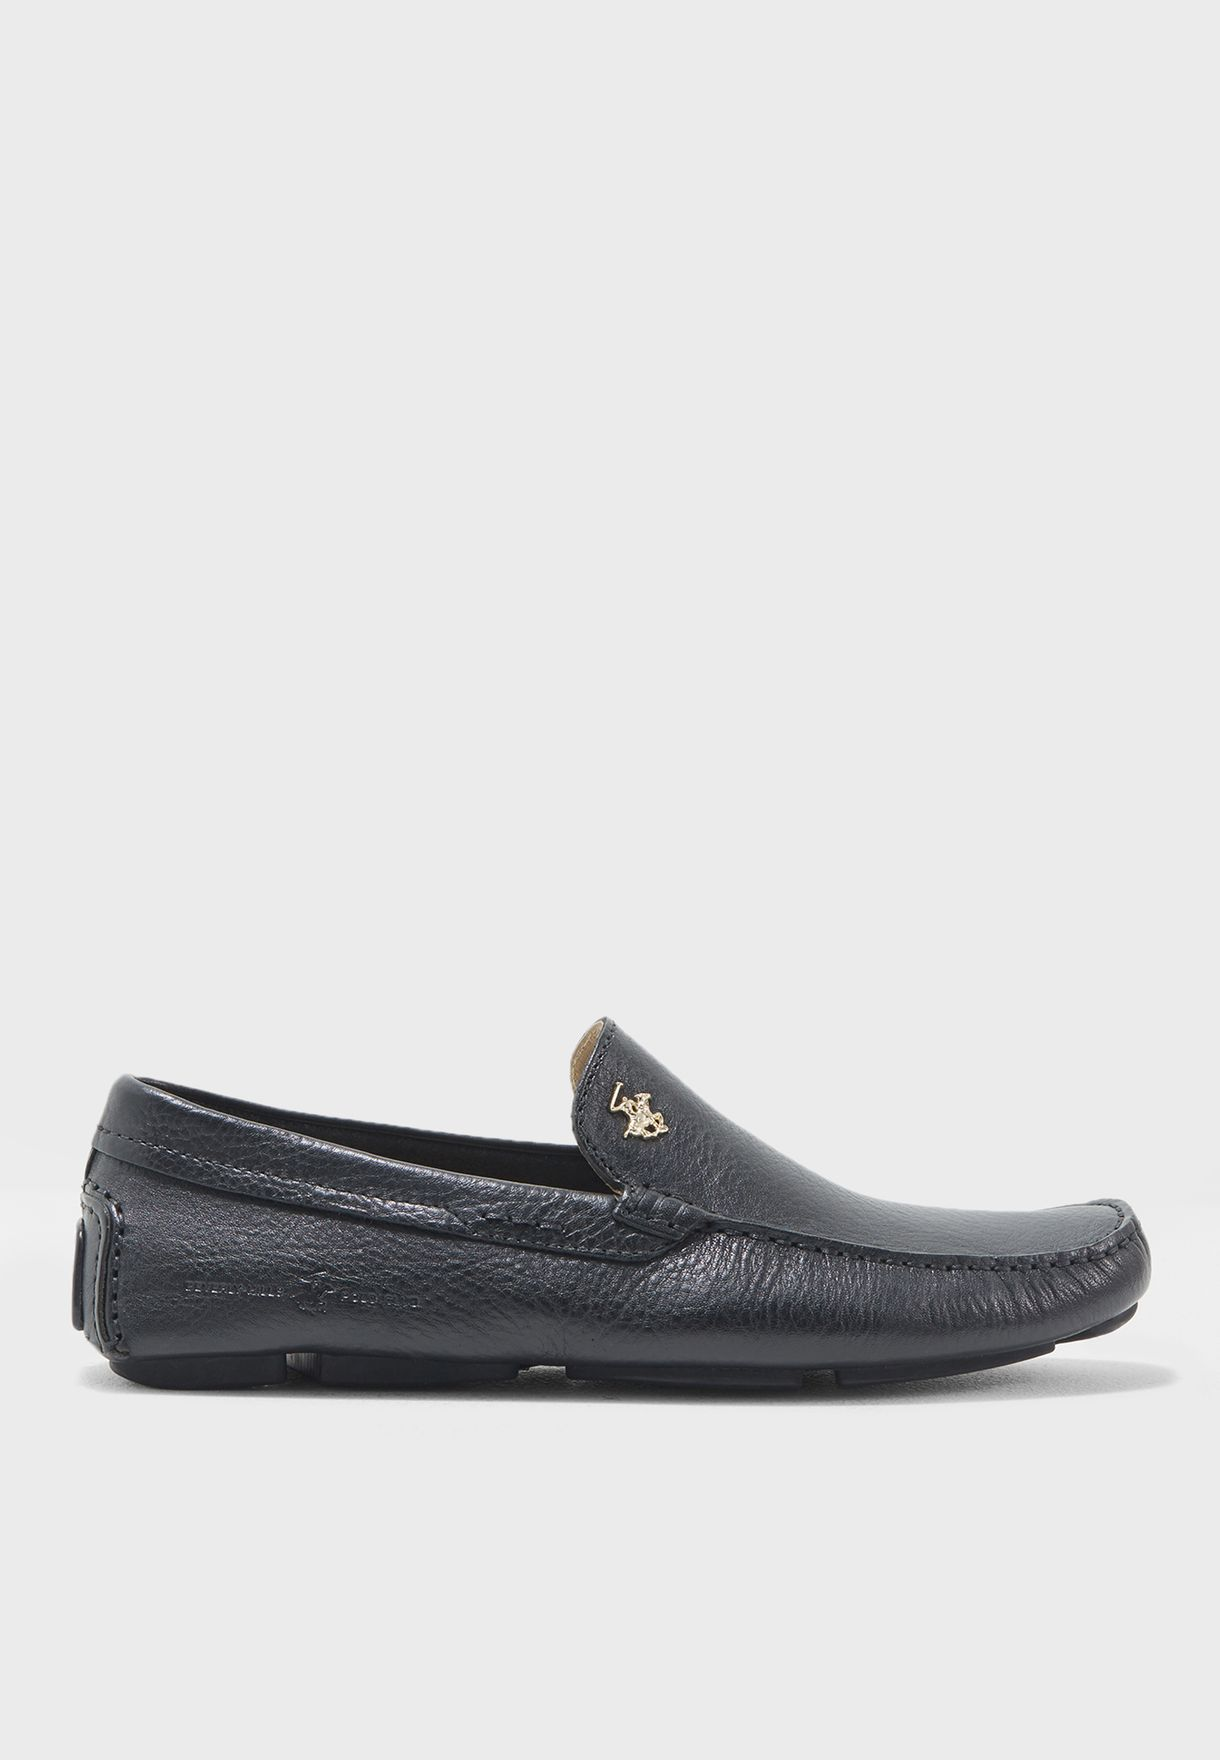 a589b6c9de64 Shop Beverly Hills Polo Club black Leather Loafers BP SH9123 for Men ...